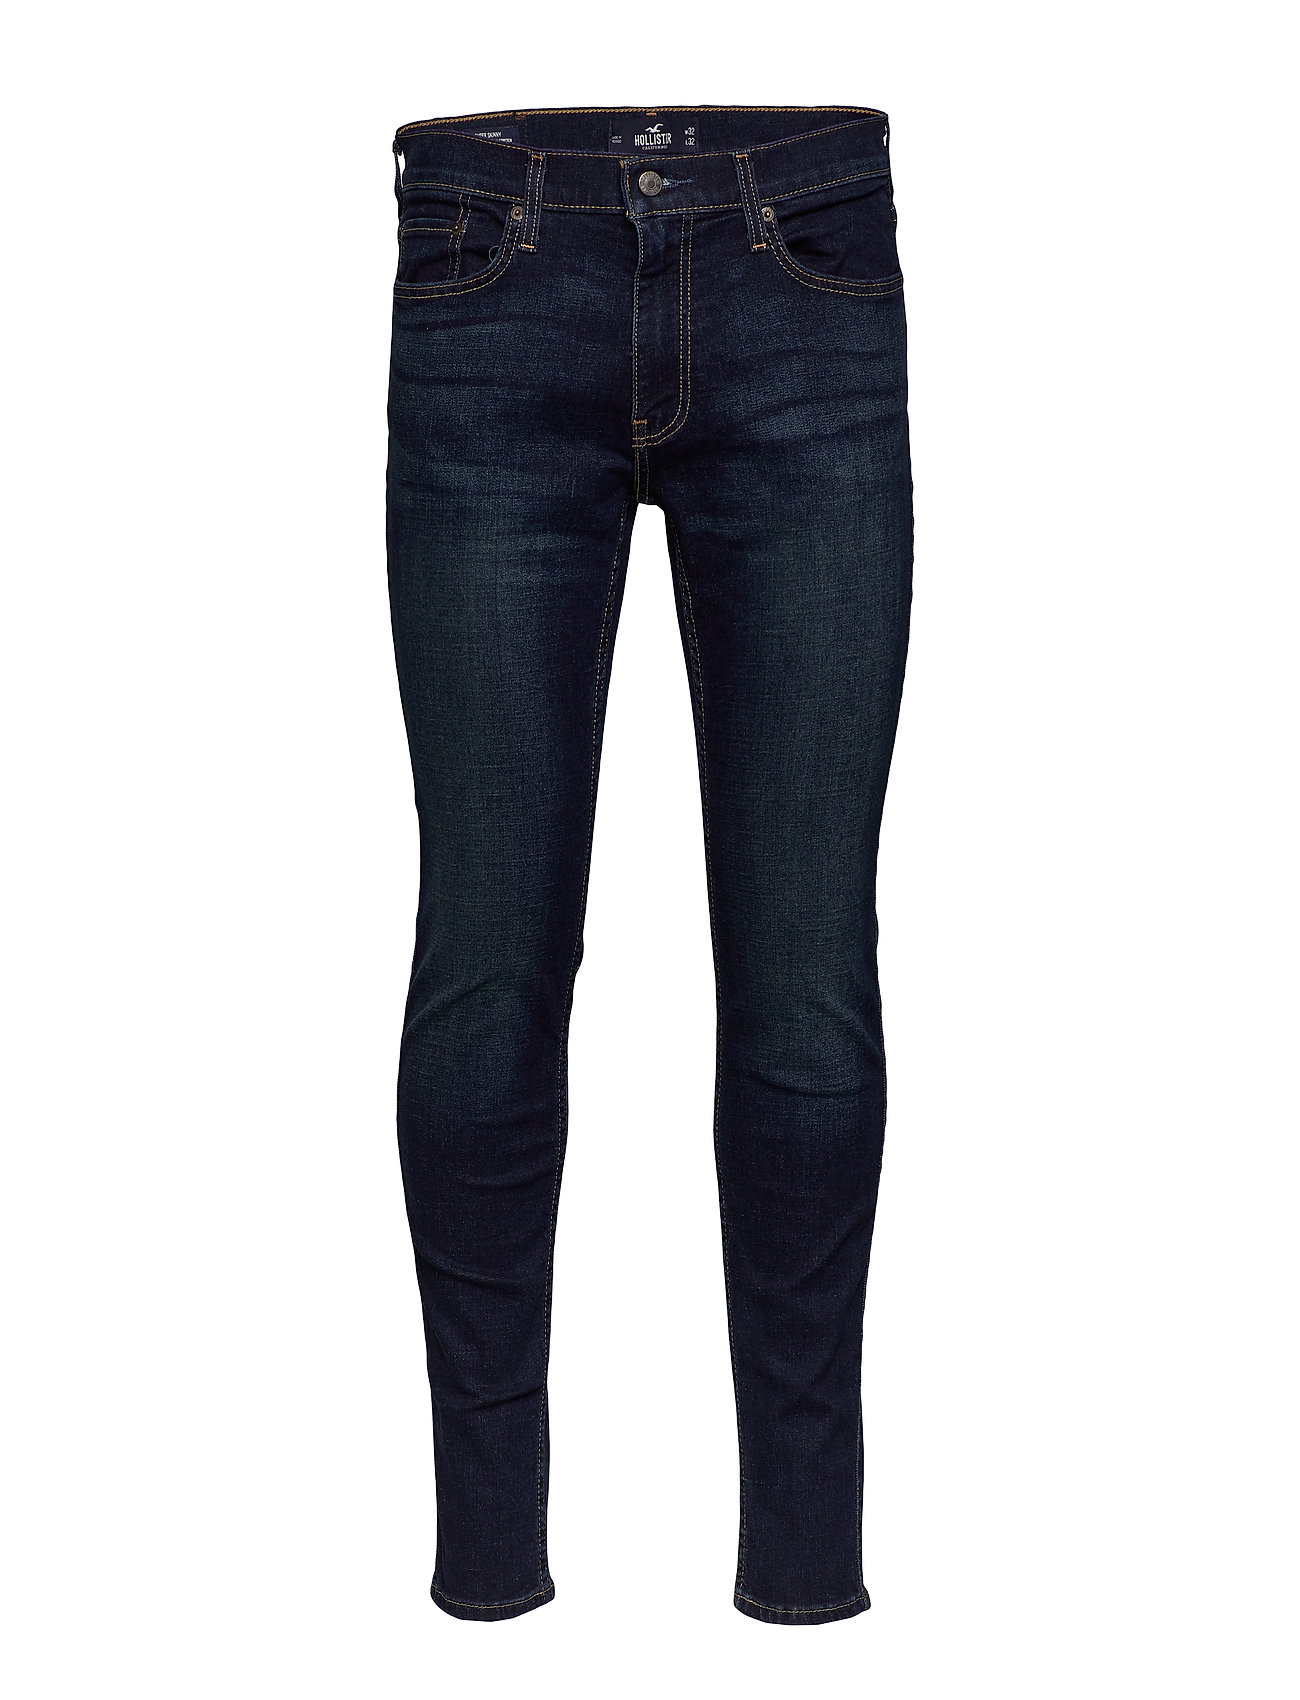 Hollister Advanced Stretch Super Skinny Jeans - DARK